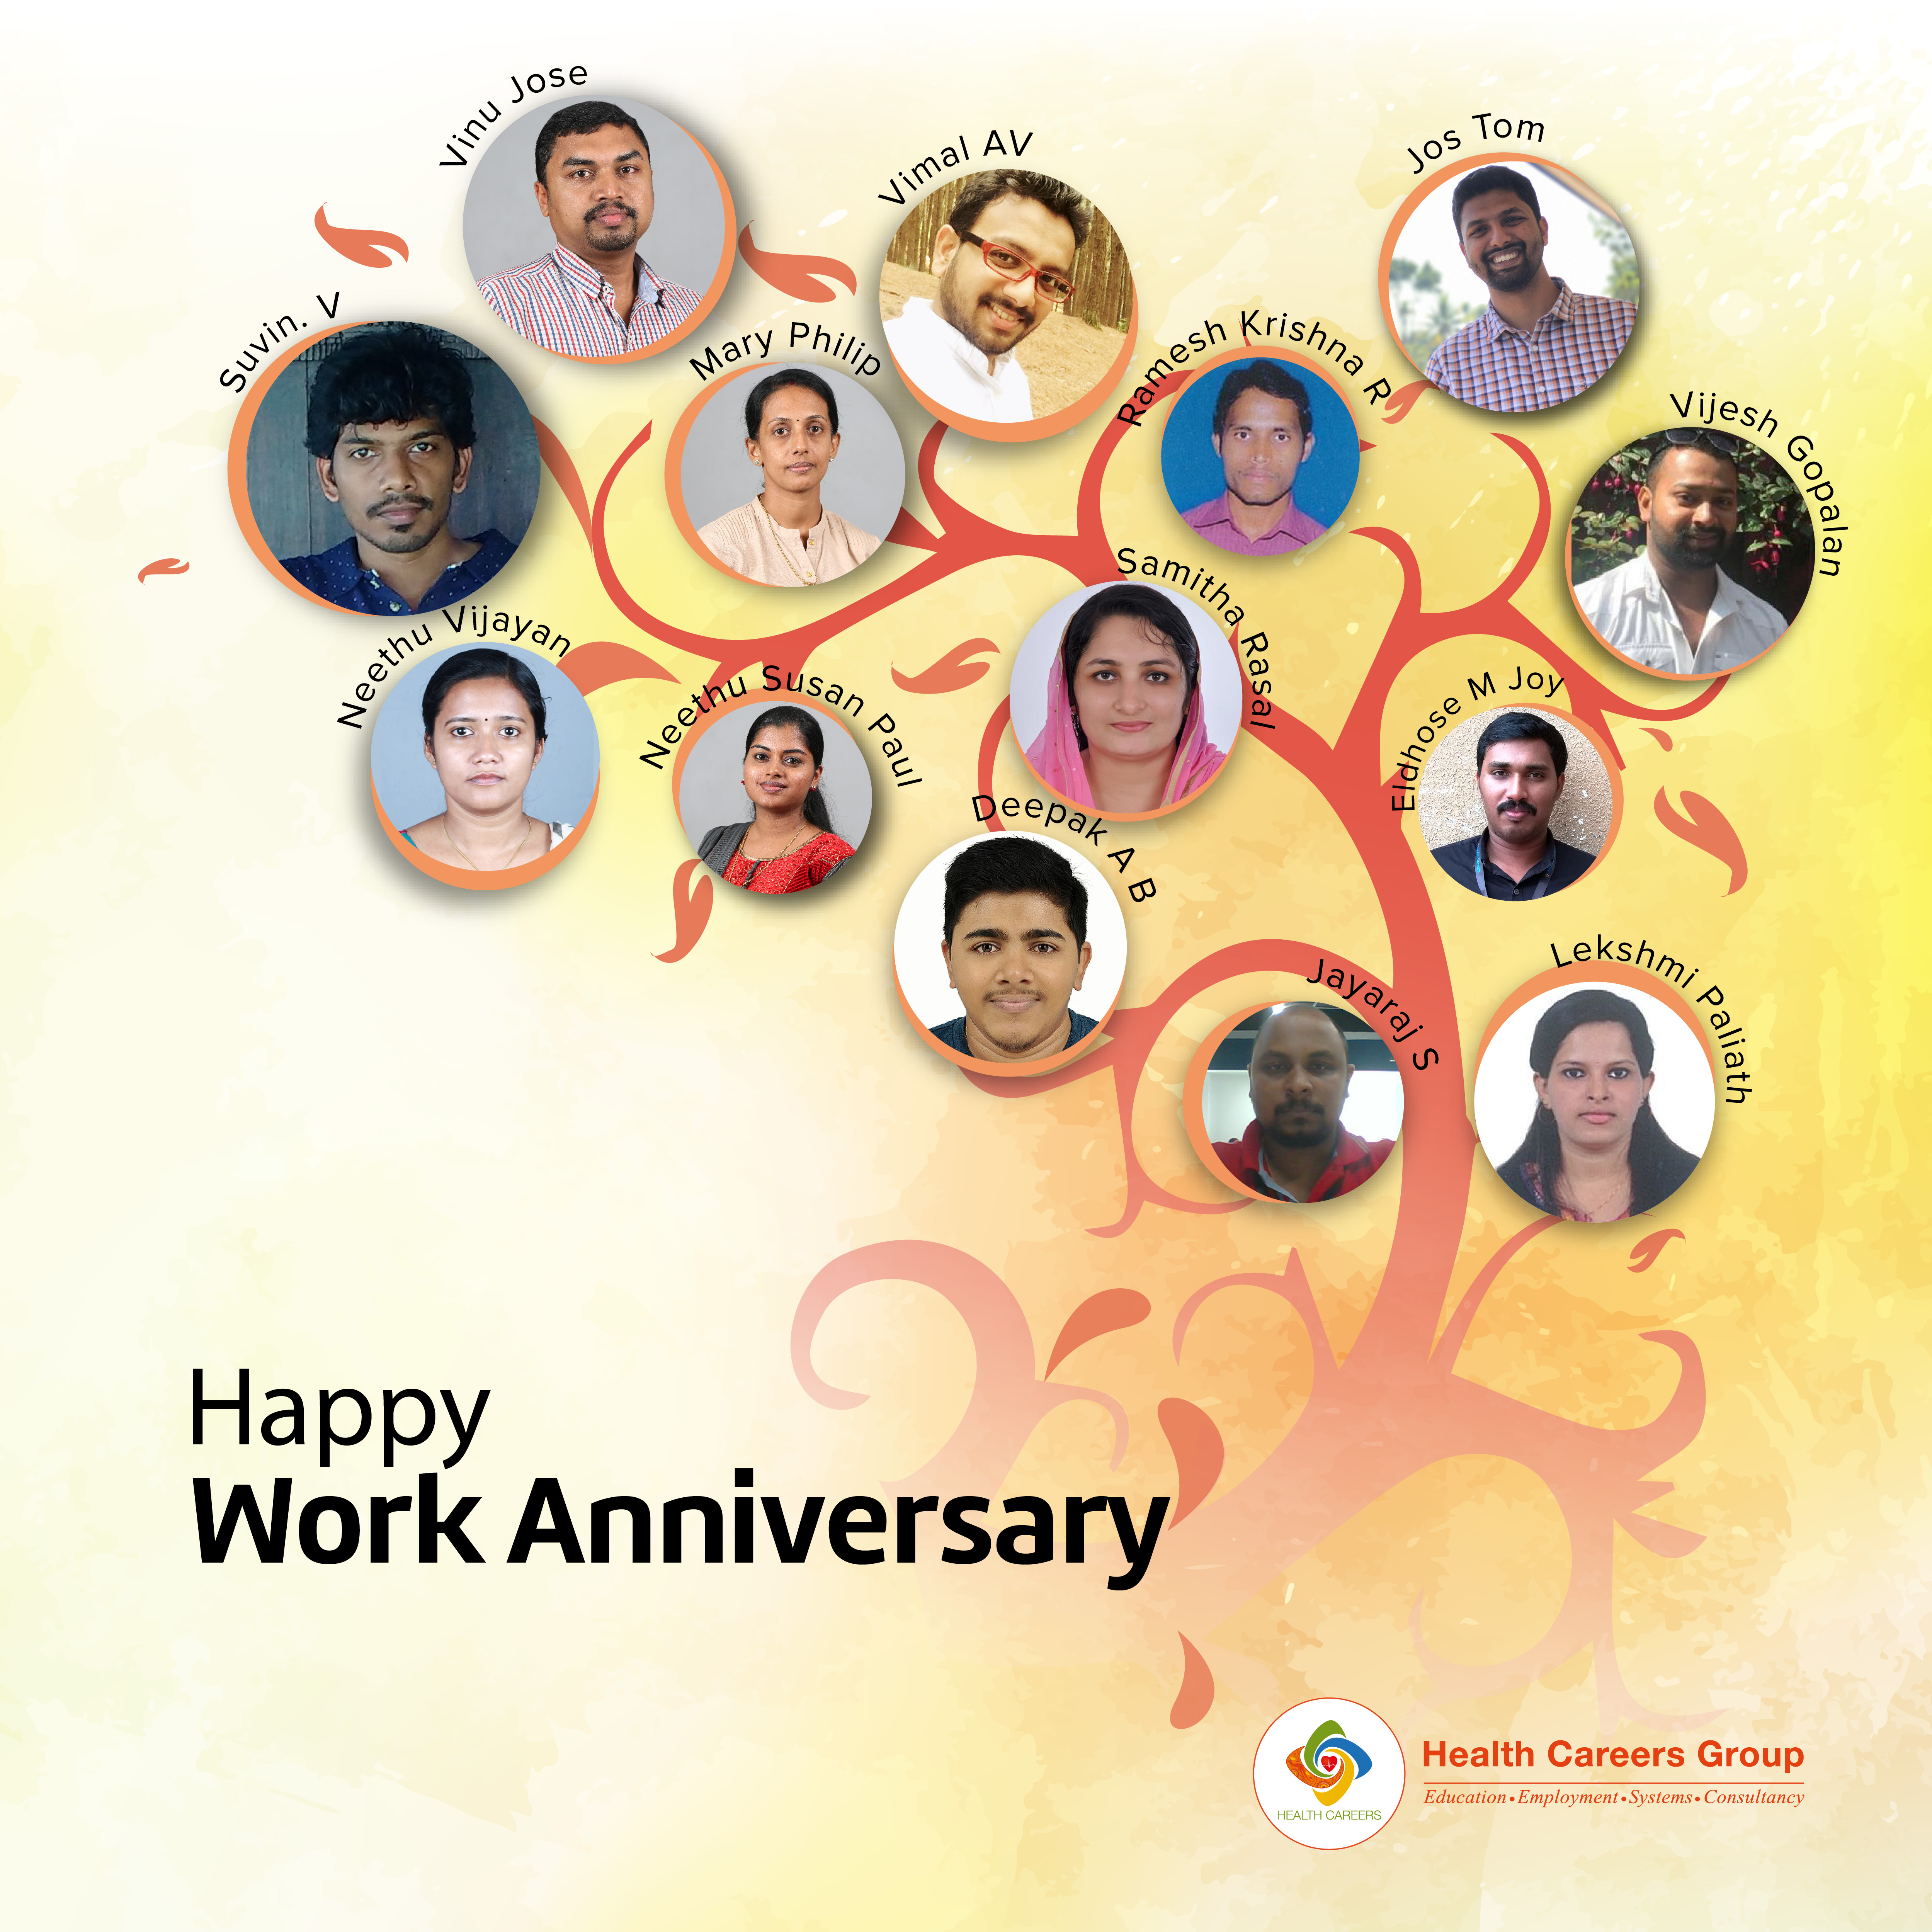 Employees Celebrating Work Anniversary On June